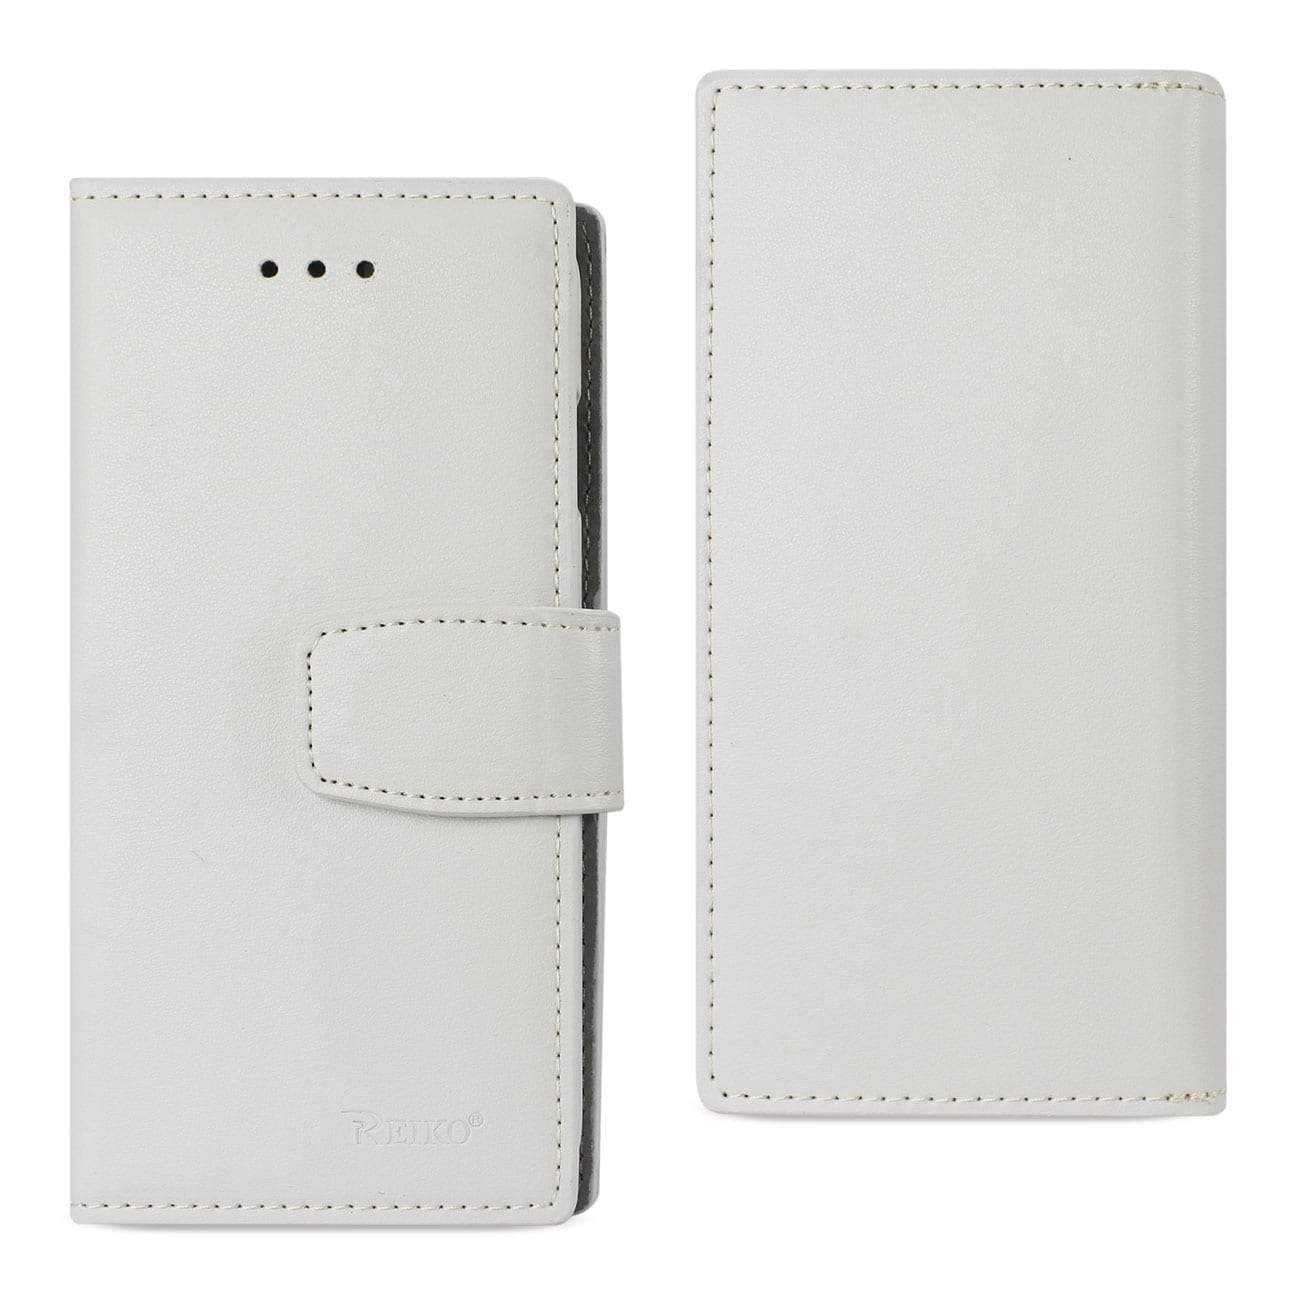 iPhone X Genuine Leather Wallet Case With Rfid Card Protection In Ivory